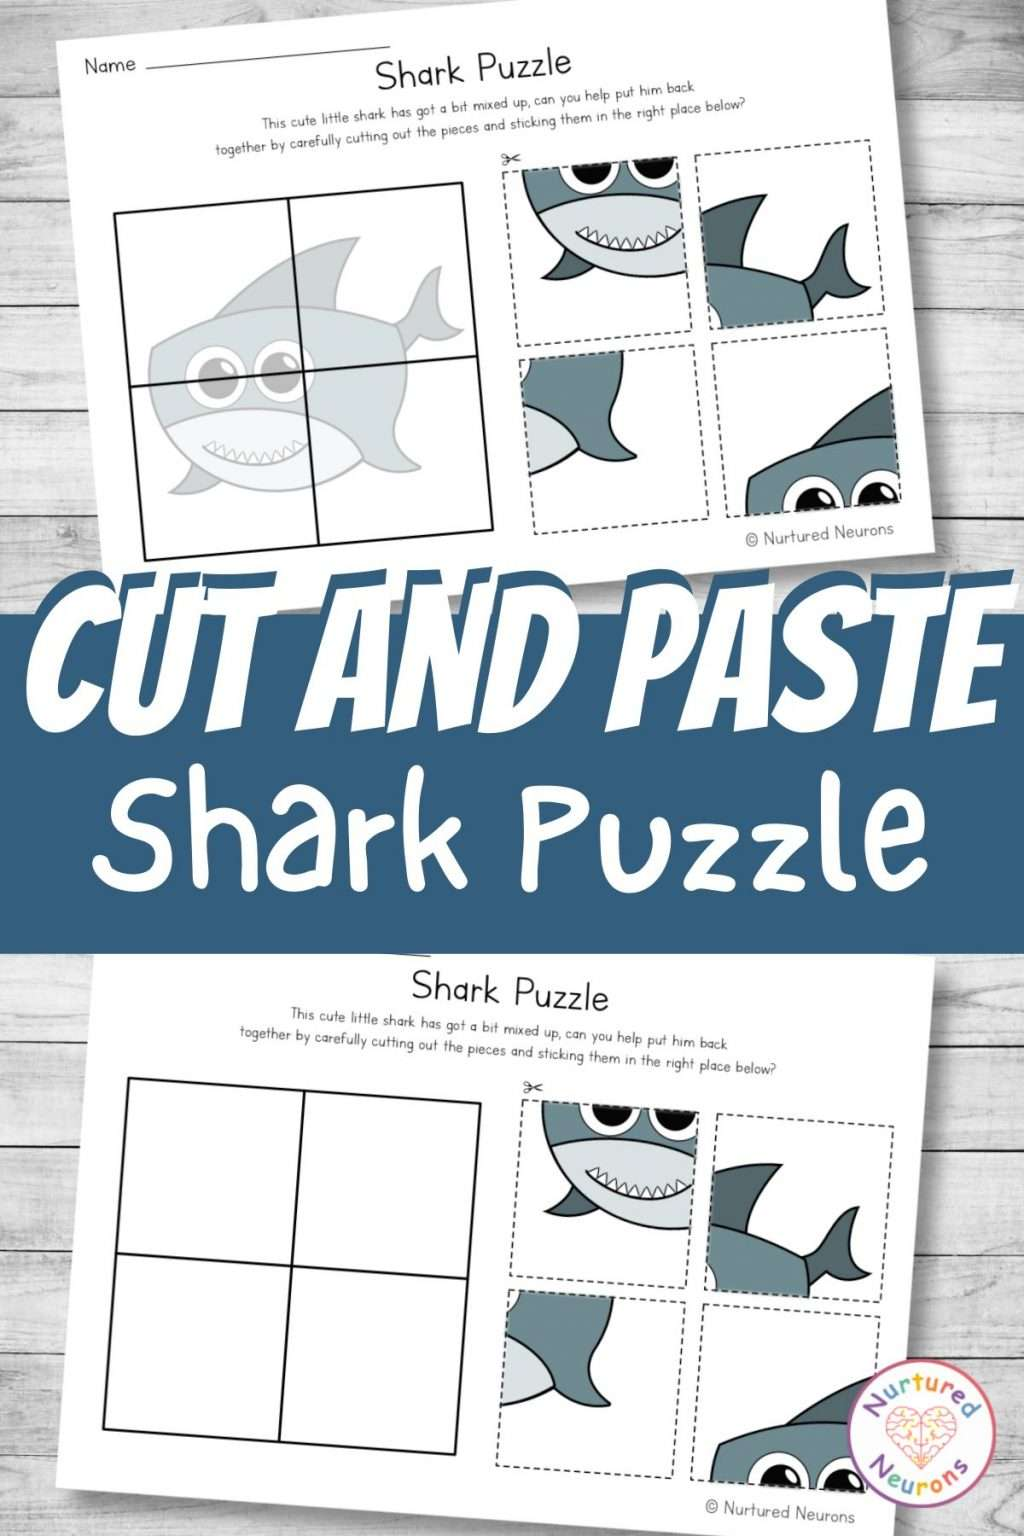 Baby Shark cut and paste worksheets for preschool and kindergarten - printable puzzle